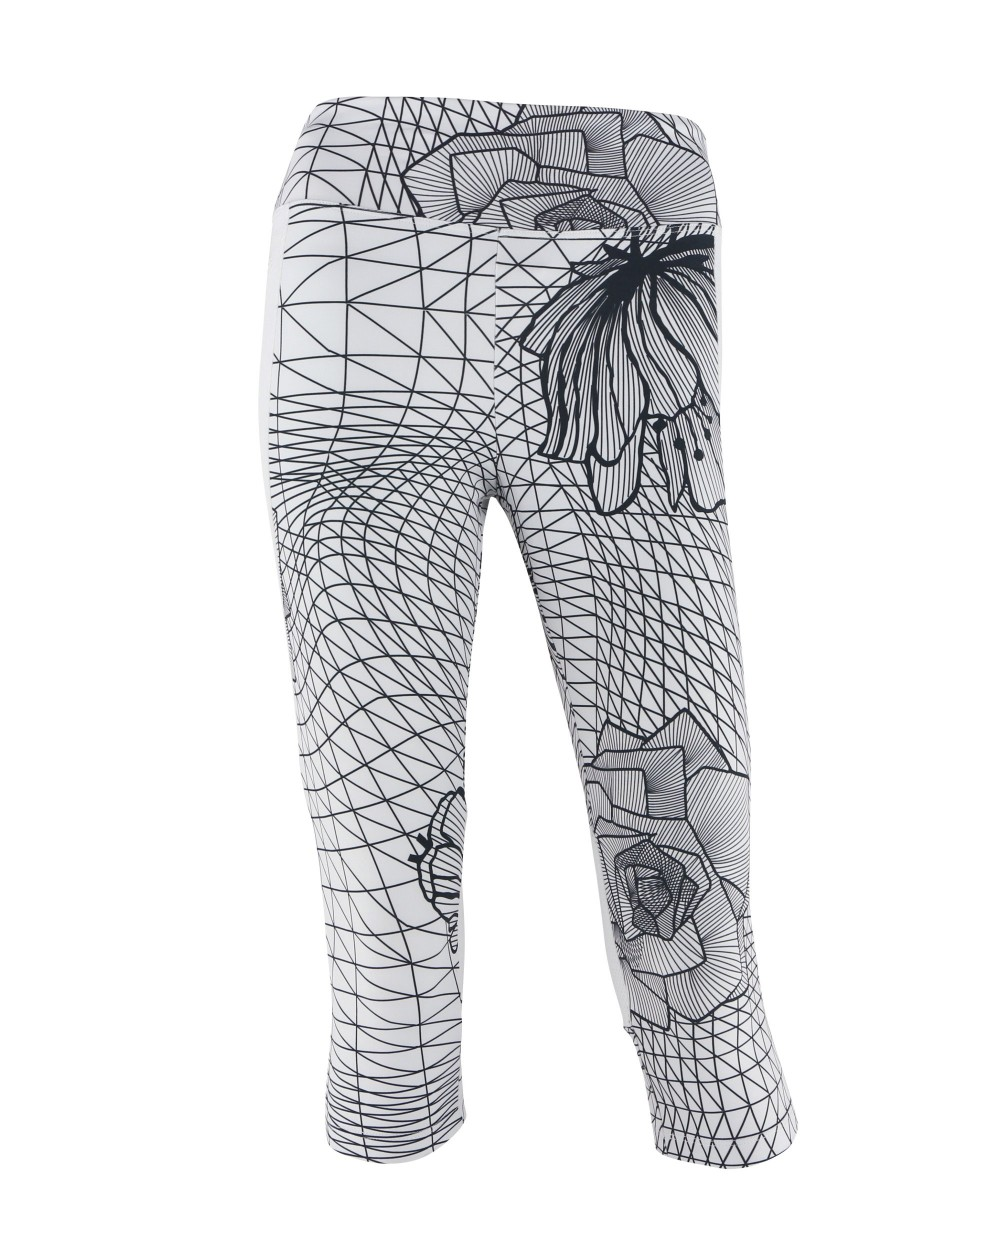 short-printed-womens-running-legging-guillaume.jpg